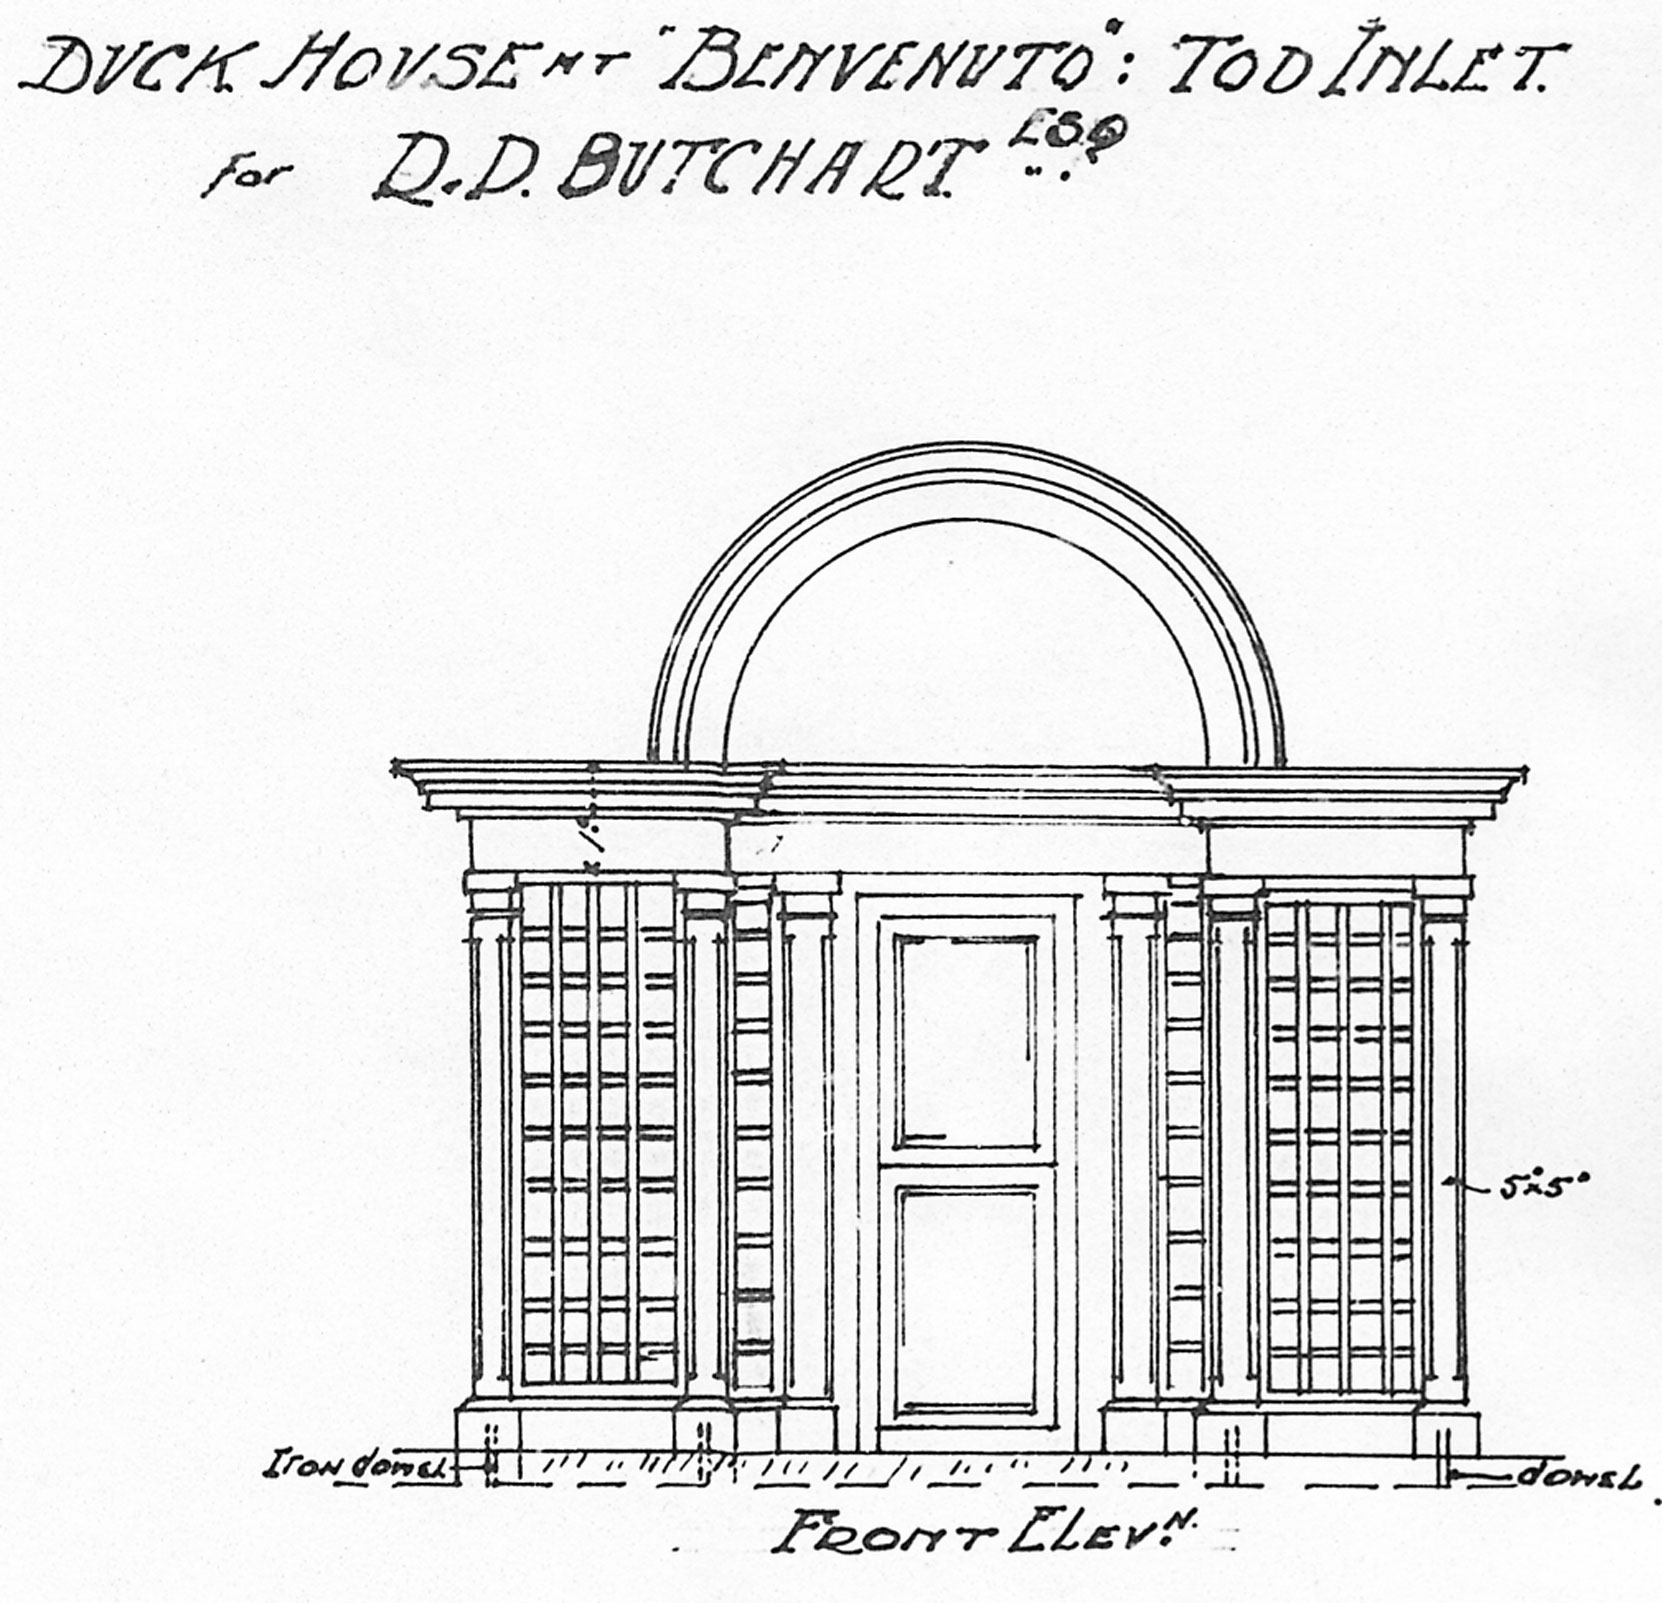 Samuel Maclure architectural drawing for the Duck House at Benvenuto, circa 1925. (Courtesy of UVic Library - Special Collections).